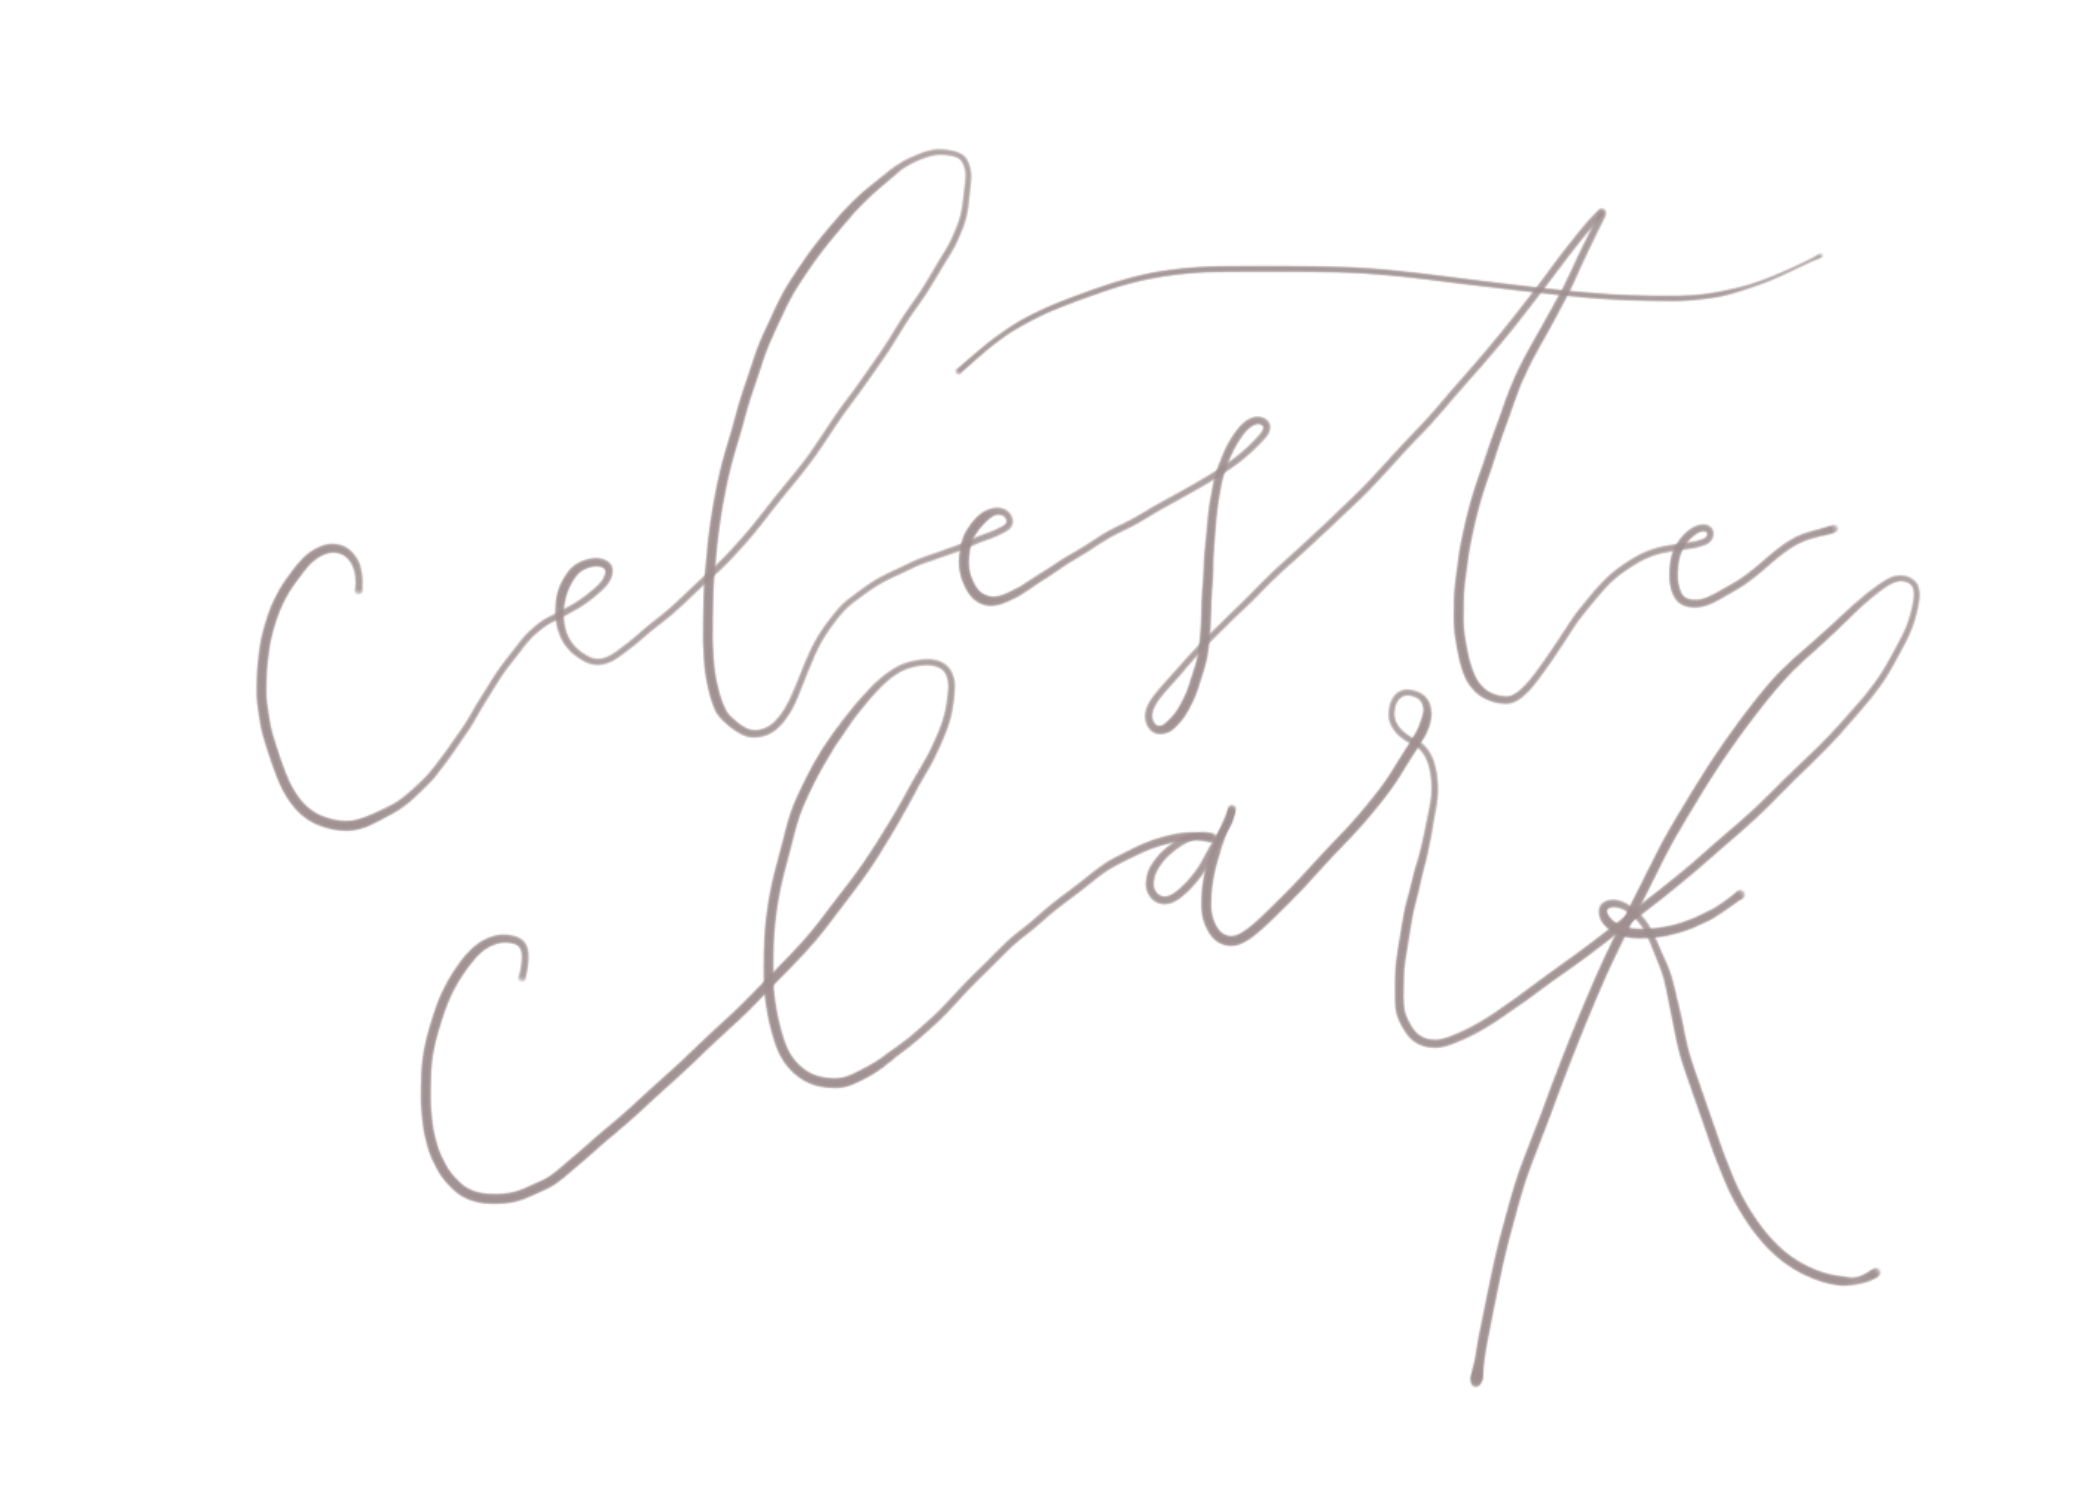 Vector underline calligraphy. Hand lettered quotes celeste